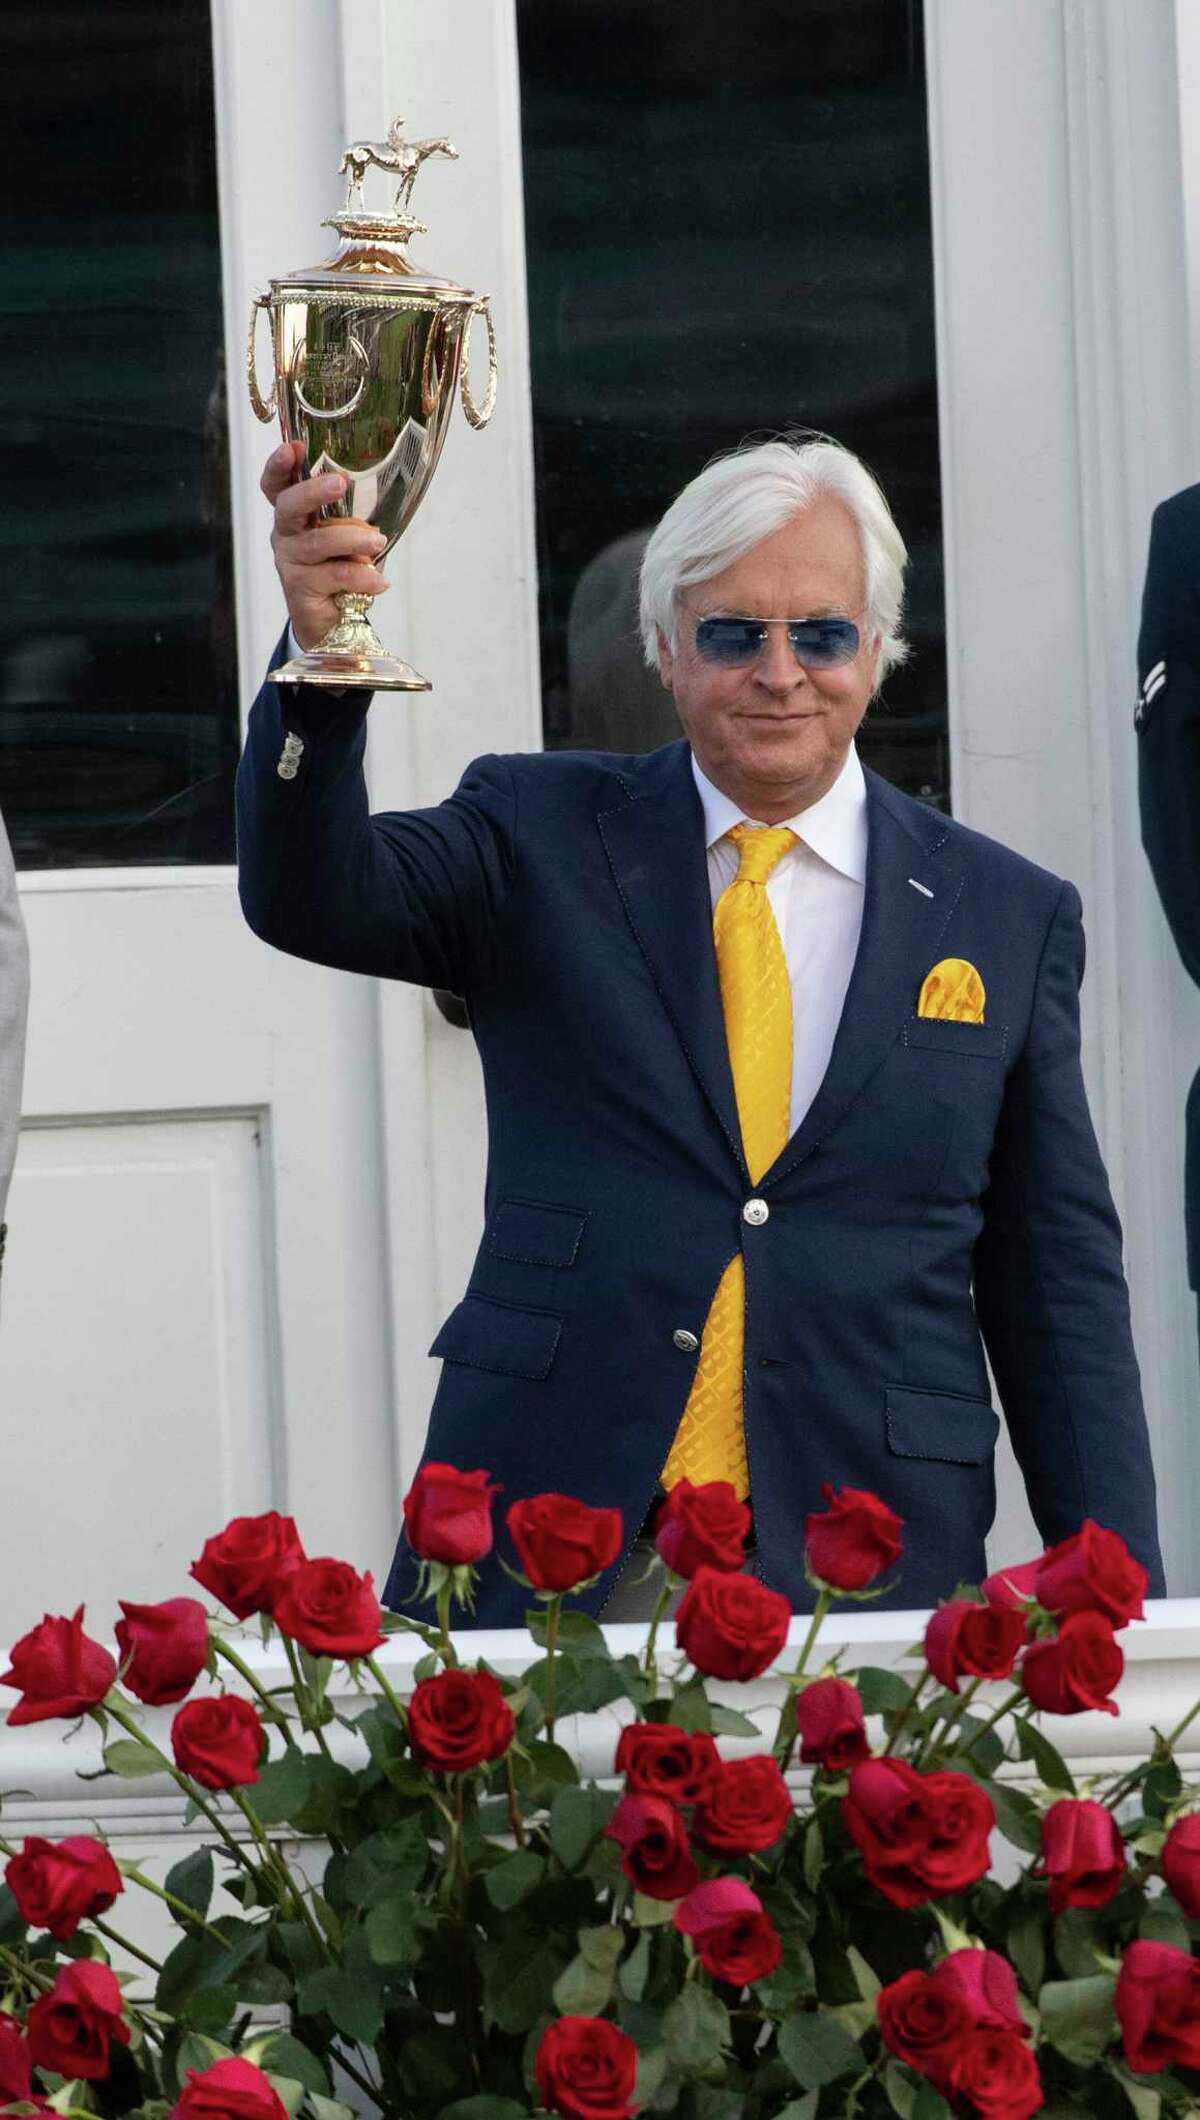 A day after his Kentucky Derby winner Medina Spirit tested positive for a banned substance, trainer Bob Baffertsaid he was staying away from Saturday's PreaknessStakes, the second leg of horse racing's Triple Crown. Baffert said he still intends to run the horse in the race. In this photo, Baffertholds the winner's trophy aloft after his charge Authentic with jockey John Velazquez won the 146th running of the Kentucky Derby at Churchill Downs Race Course Saturday Sept 5, 2020 in Louisville, KY. Photo by Skip Dickstein/Special to the Times Union